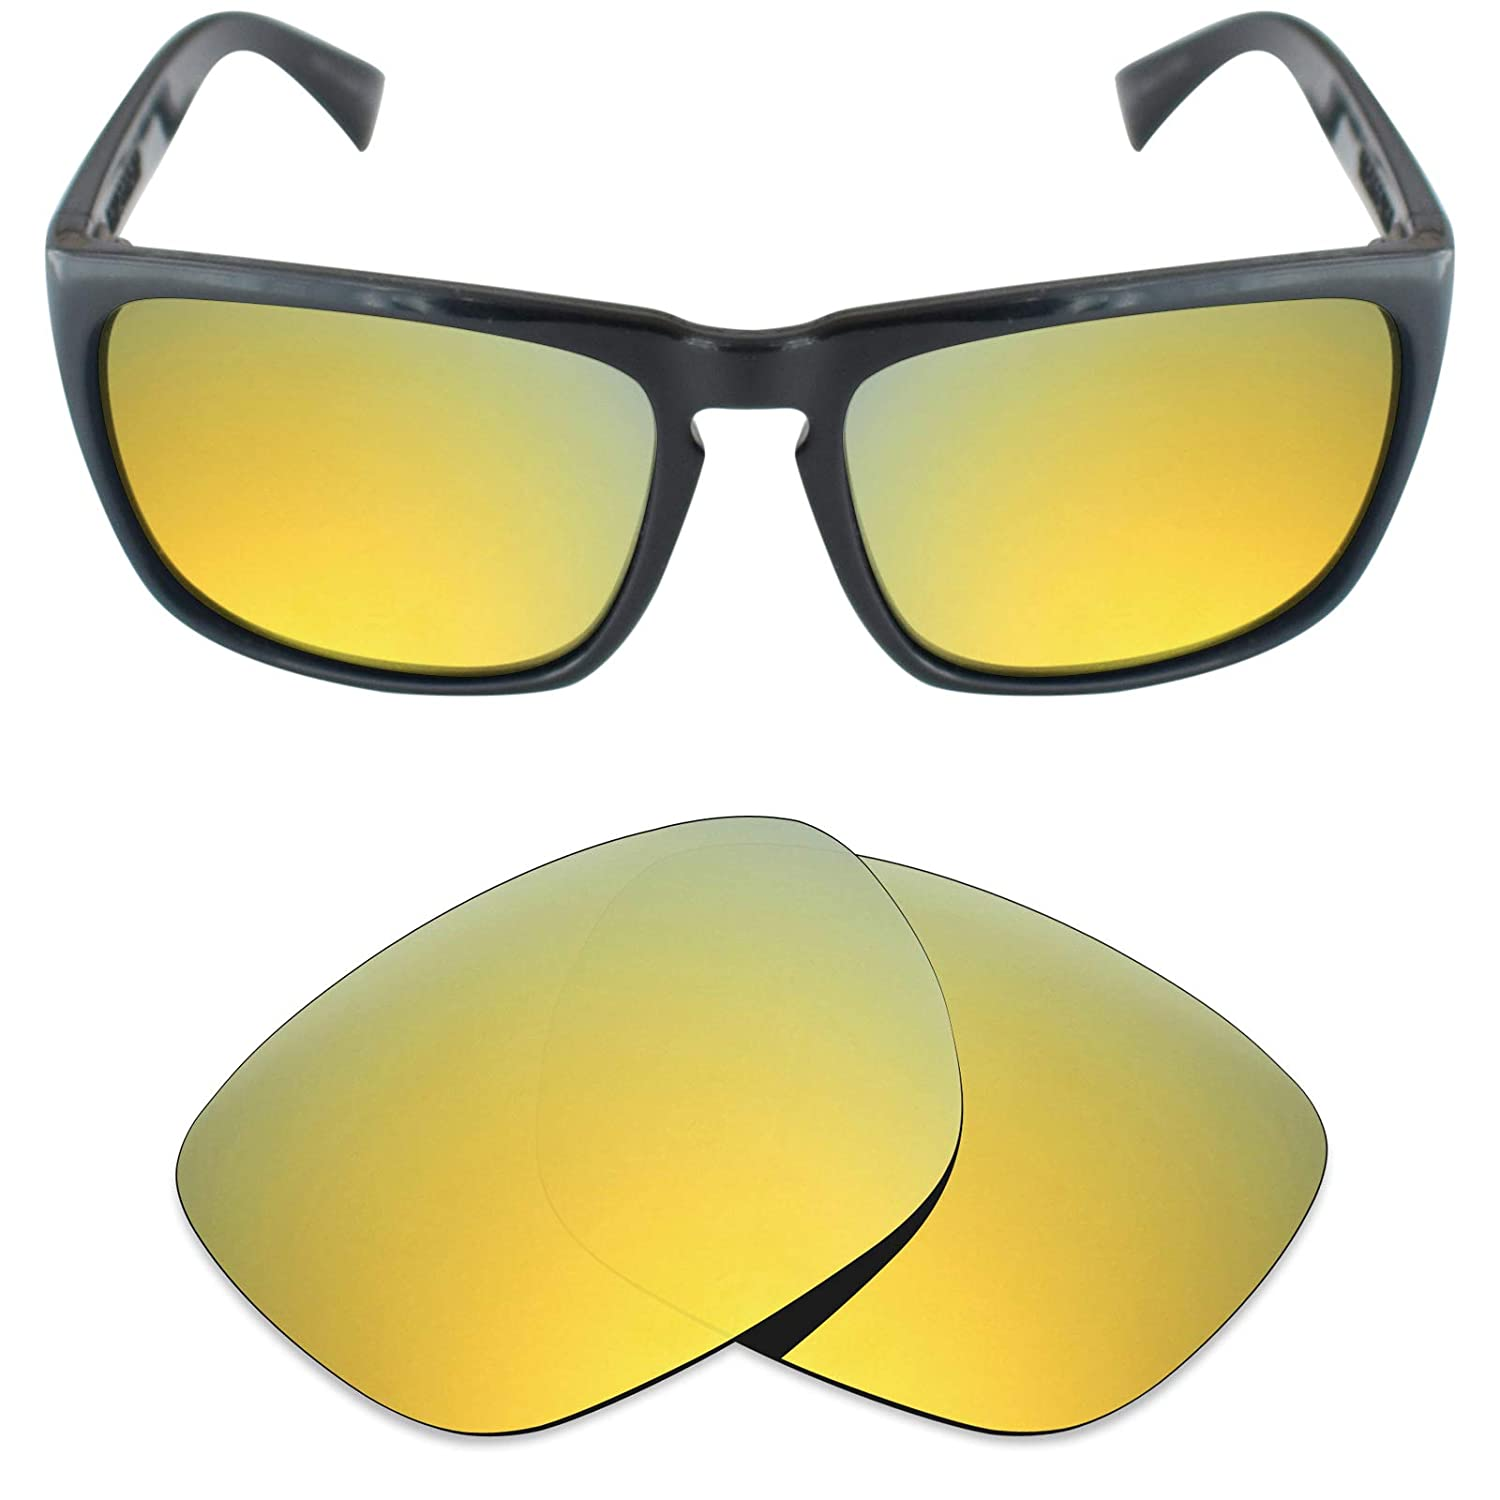 a4cea458f4c Amazon.com  Mryok Polarized Replacement Lenses for Electric Knoxville XL -  24K Gold  Clothing